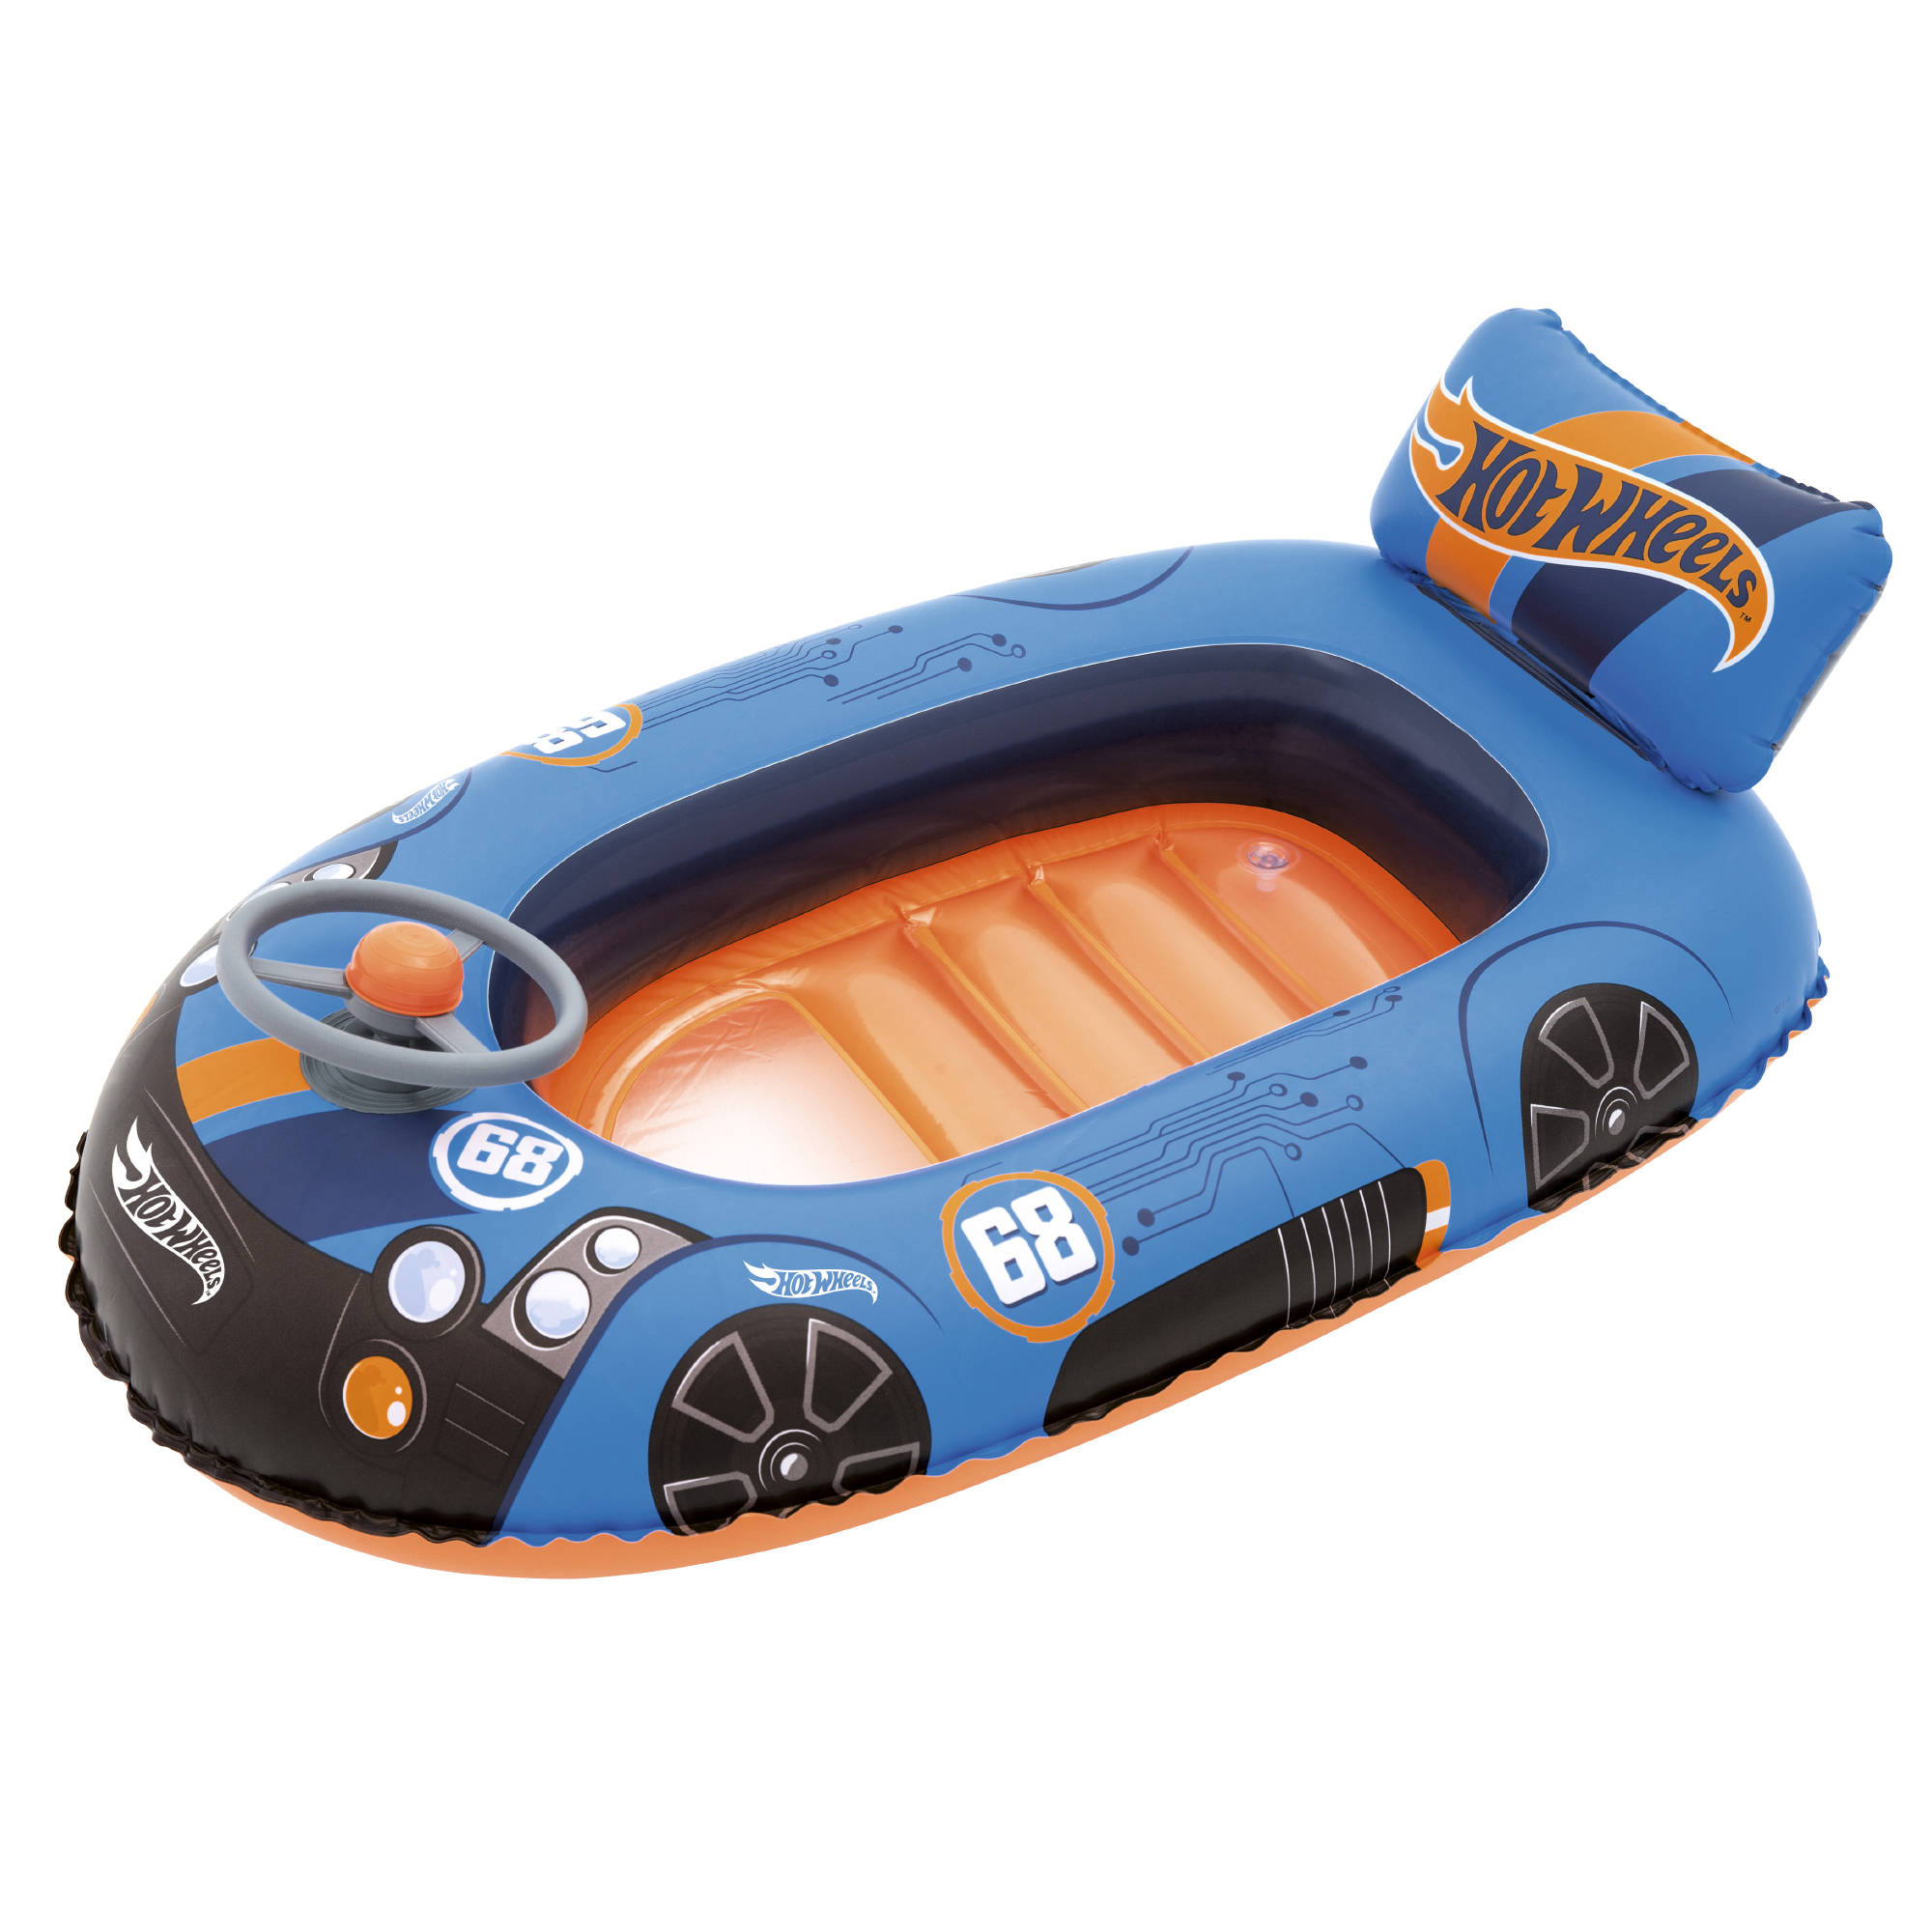 Hot Wheels Speed Boat Inflatable Pool Float - Walmart.com